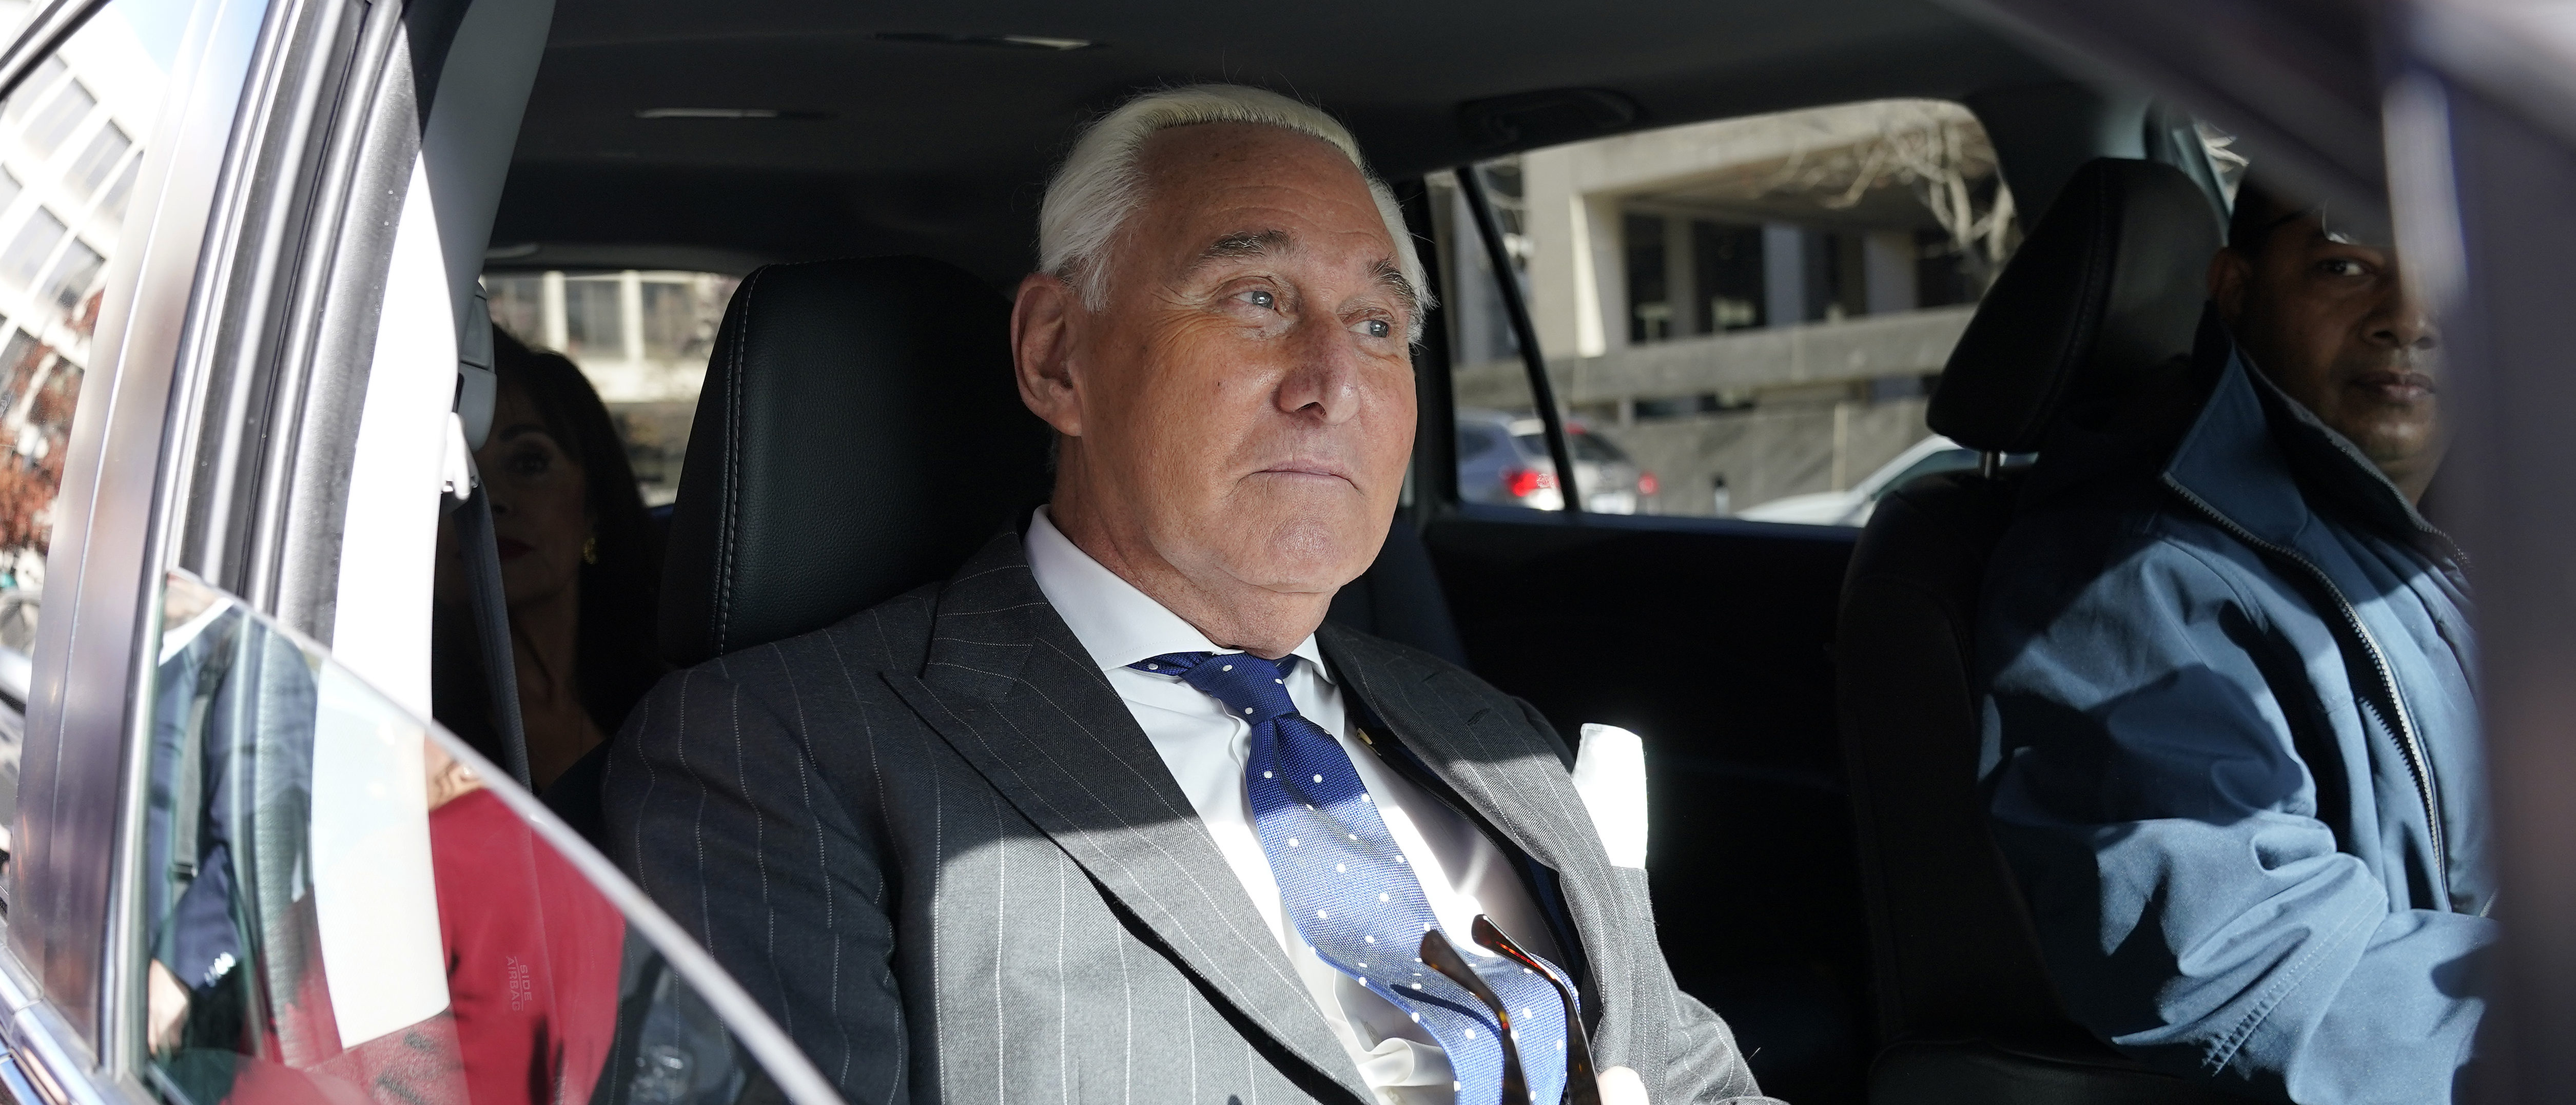 Former advisor to U.S. President Donald Trump, Roger Stone, departs the E. Barrett Prettyman United States Courthouse after being found guilty of obstructing a congressional investigation into Russia's interference in the 2016 election on November 15, 2019 in Washington, DC. (Win McNamee/Getty Images)